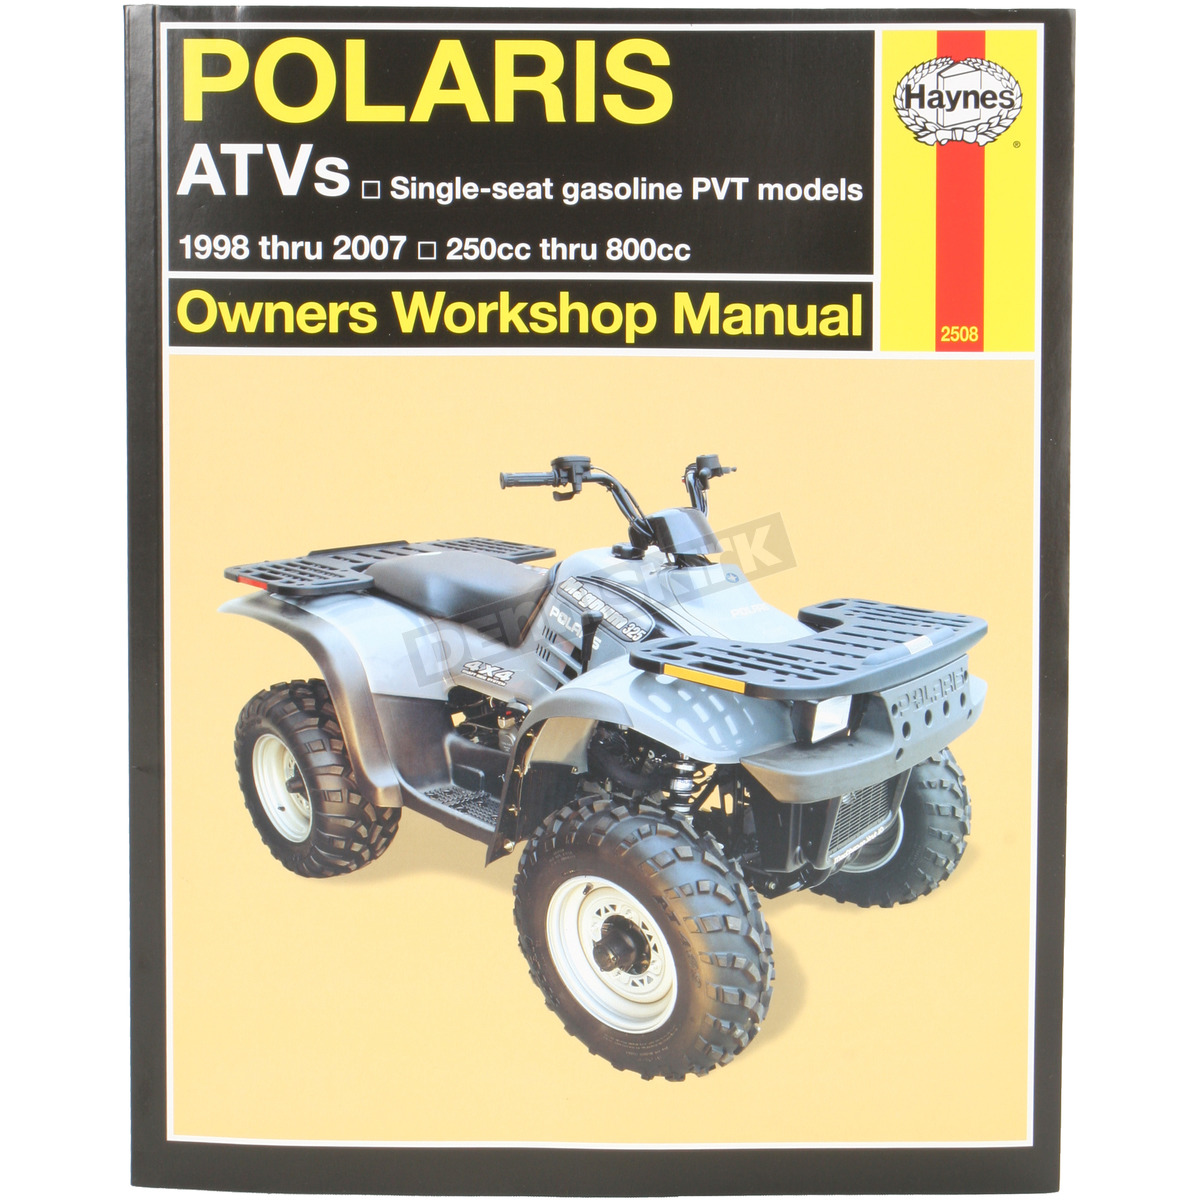 haynes polaris repair manual 2508 dennis kirk rh denniskirk com 1998 polaris xplorer 400 repair manual 1998 Polaris Explorer 400 Parts